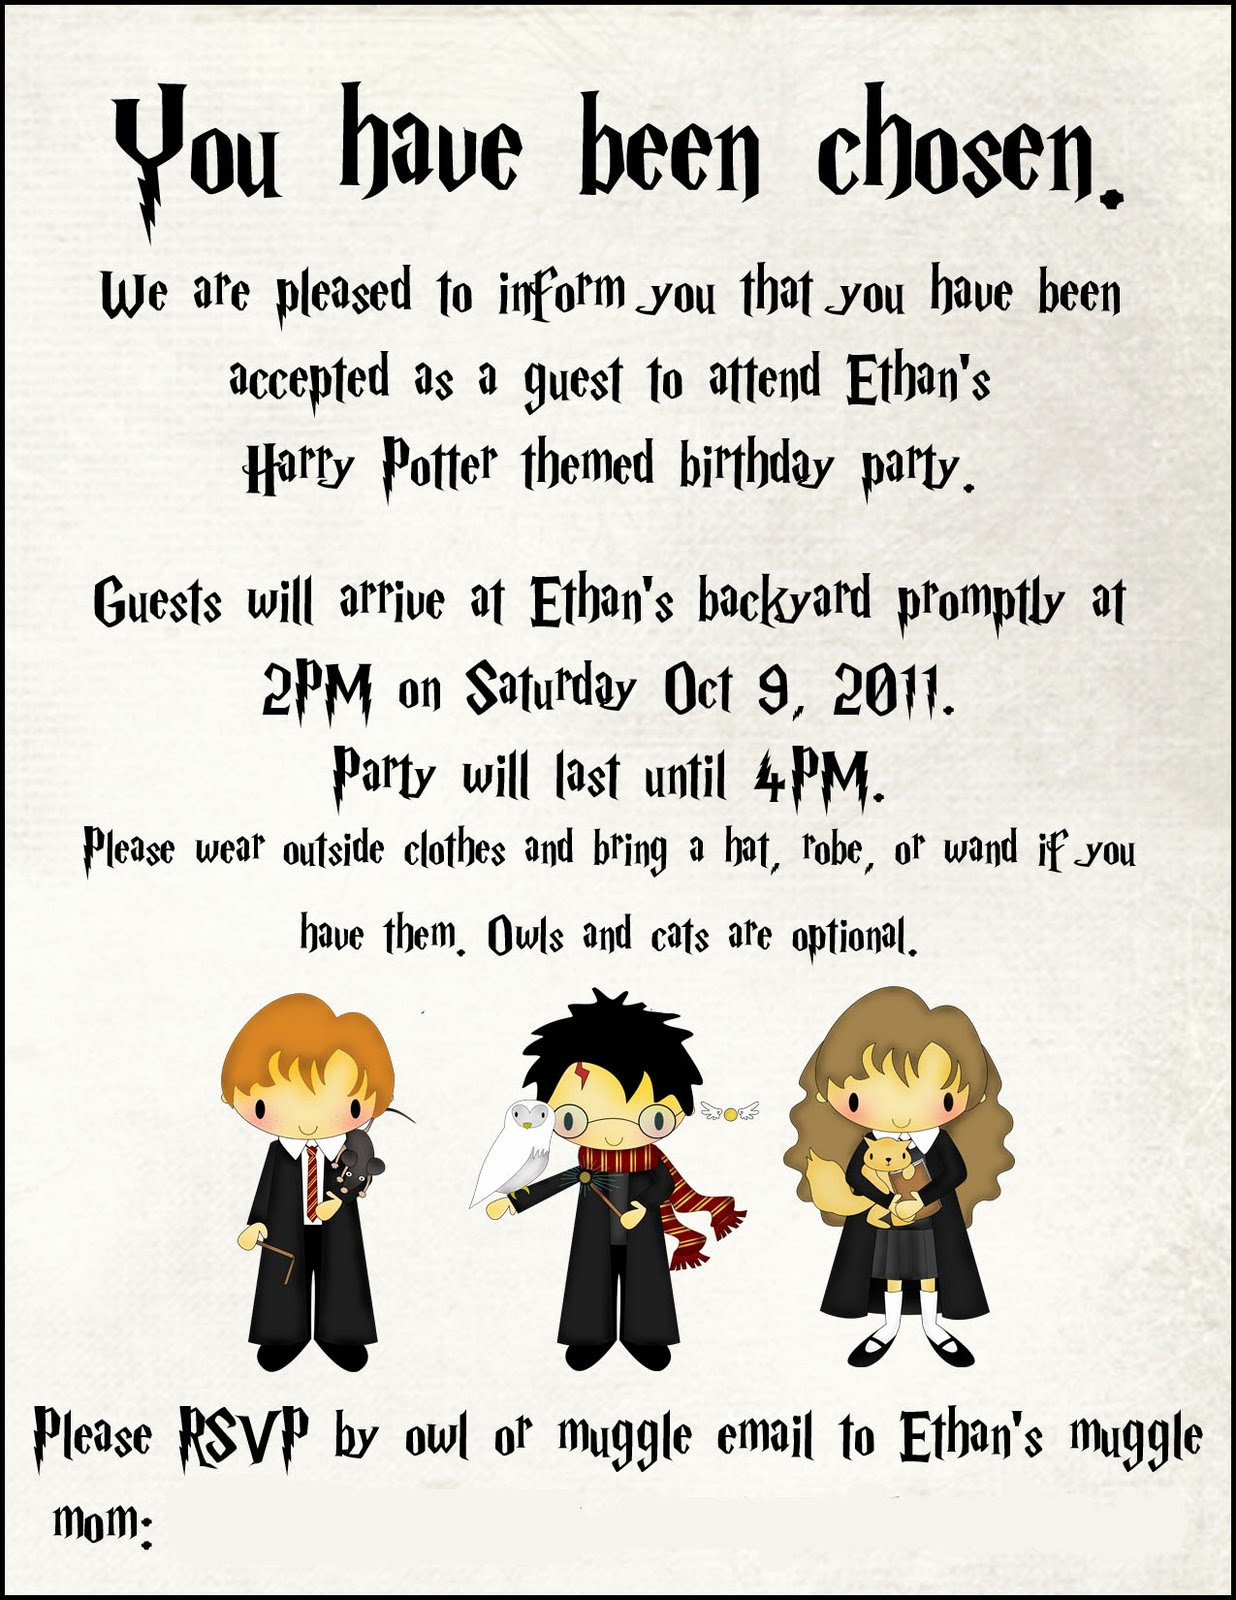 Harry Potter Party Invitation Awesome toad S Treasures Lifestyle Family Blog by Emily ashby